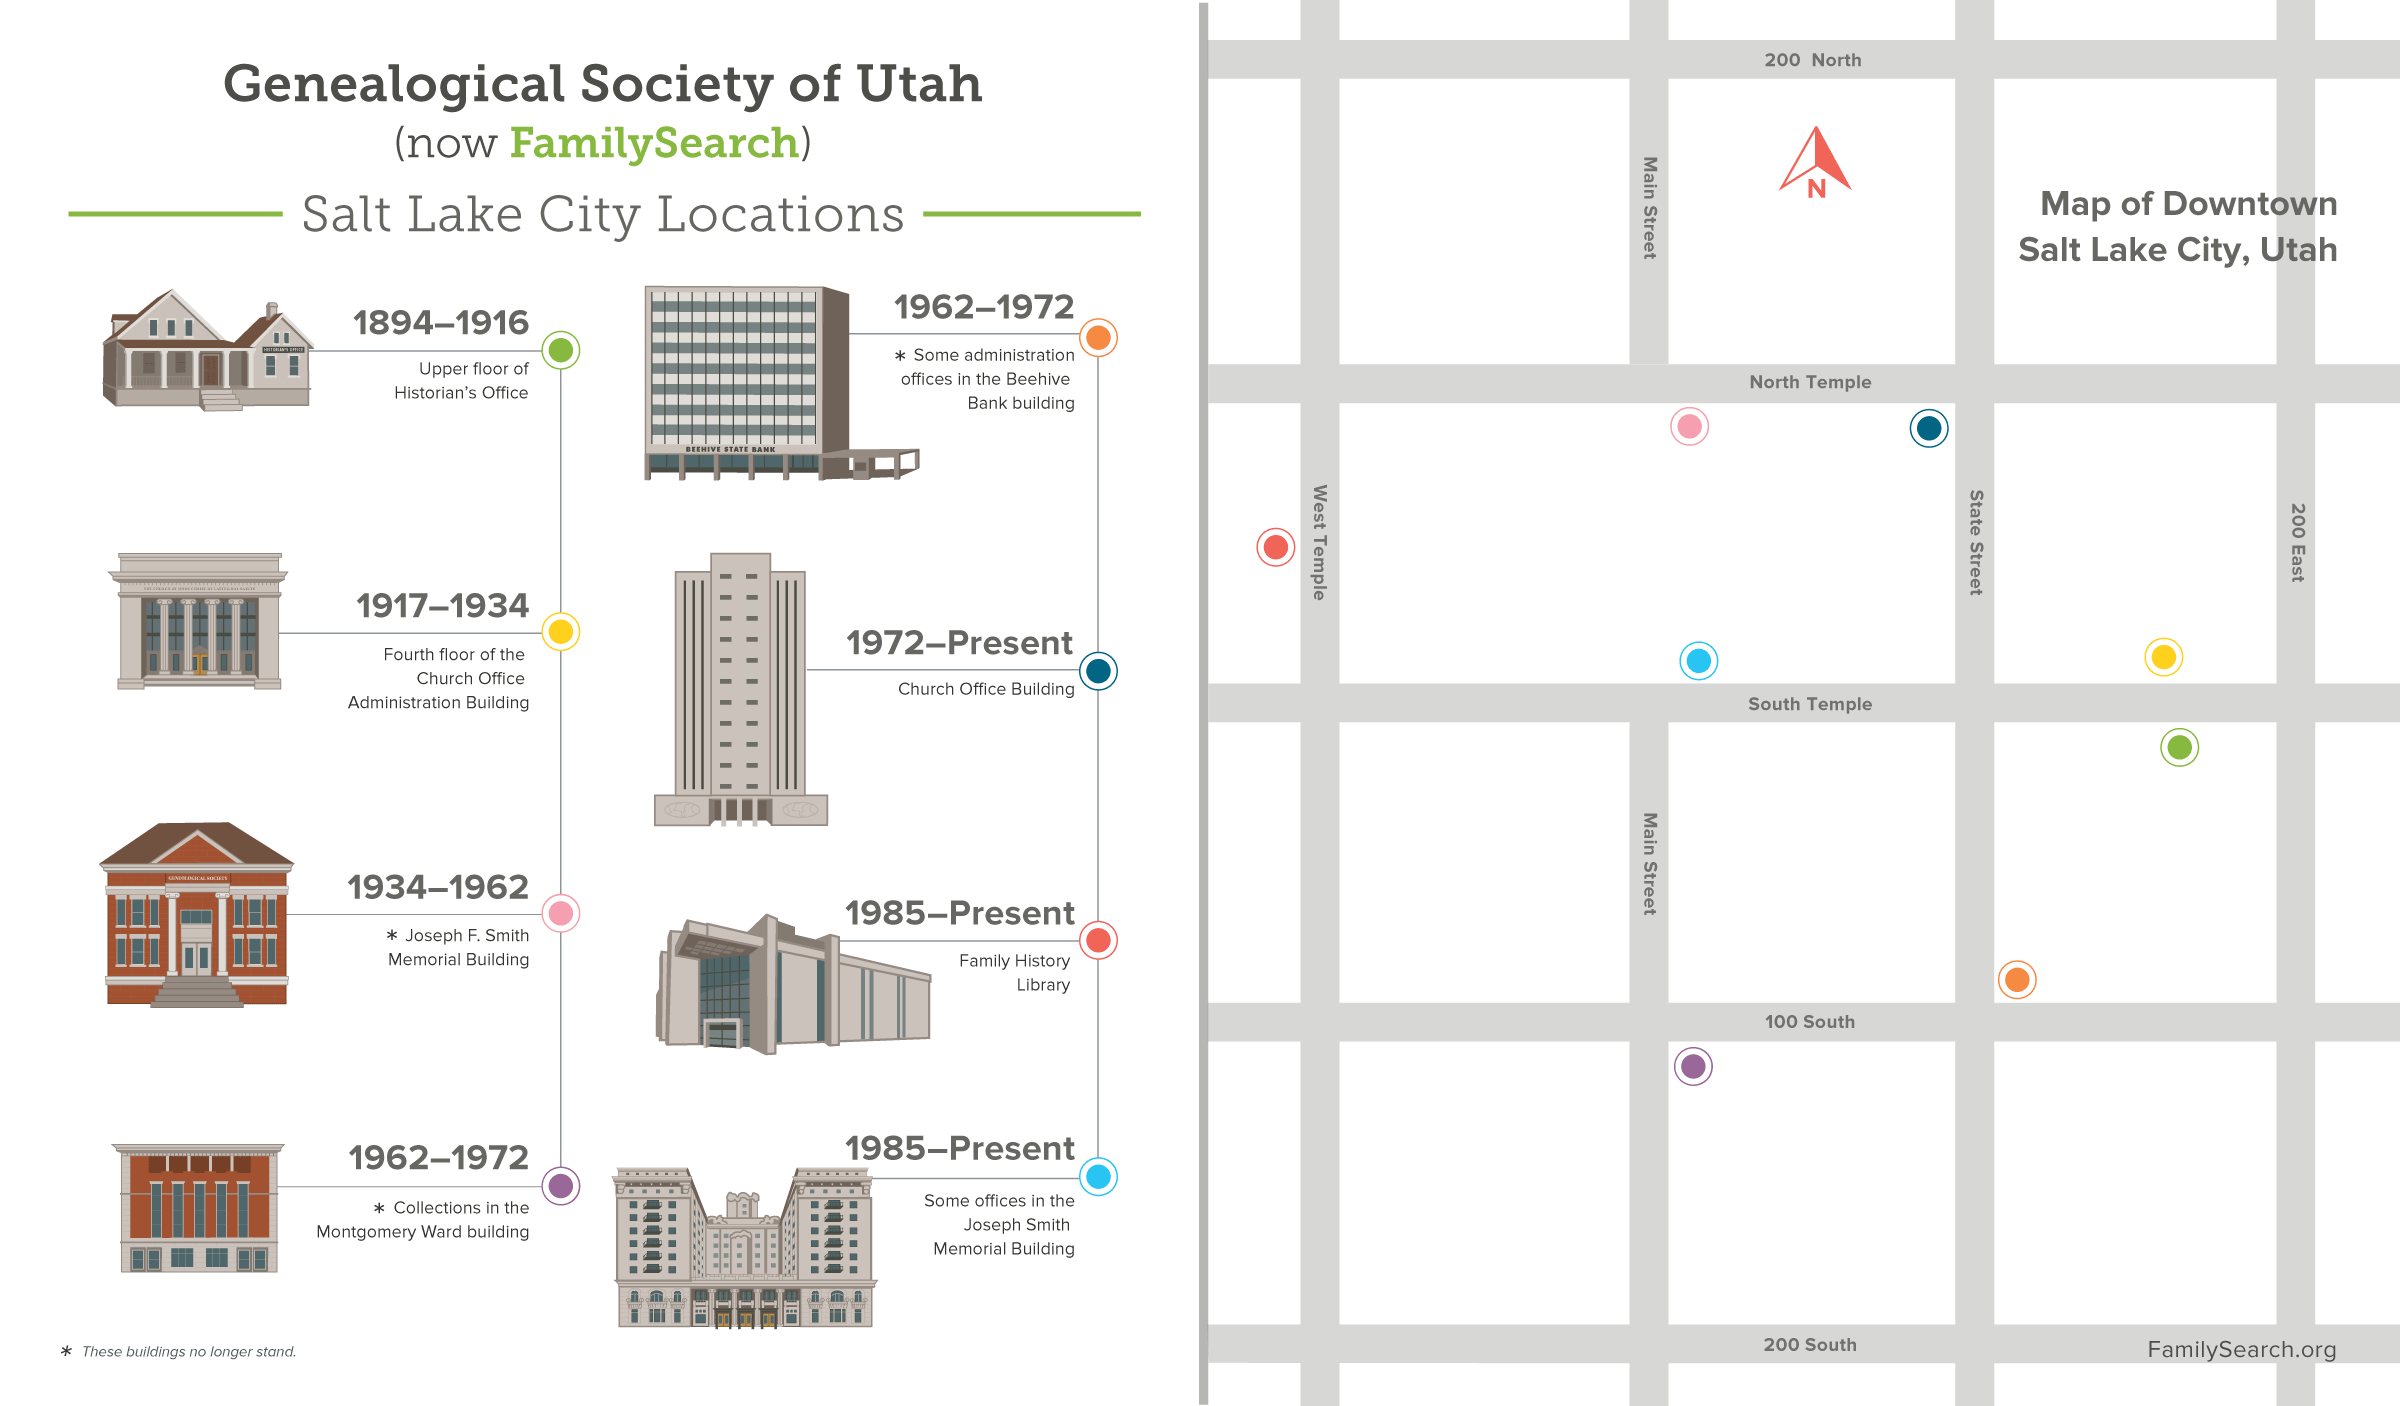 The Salt Lake City offices of FamilySearch, formerly known as the Genealogical Society of Utah, have changed over the past 125 years.